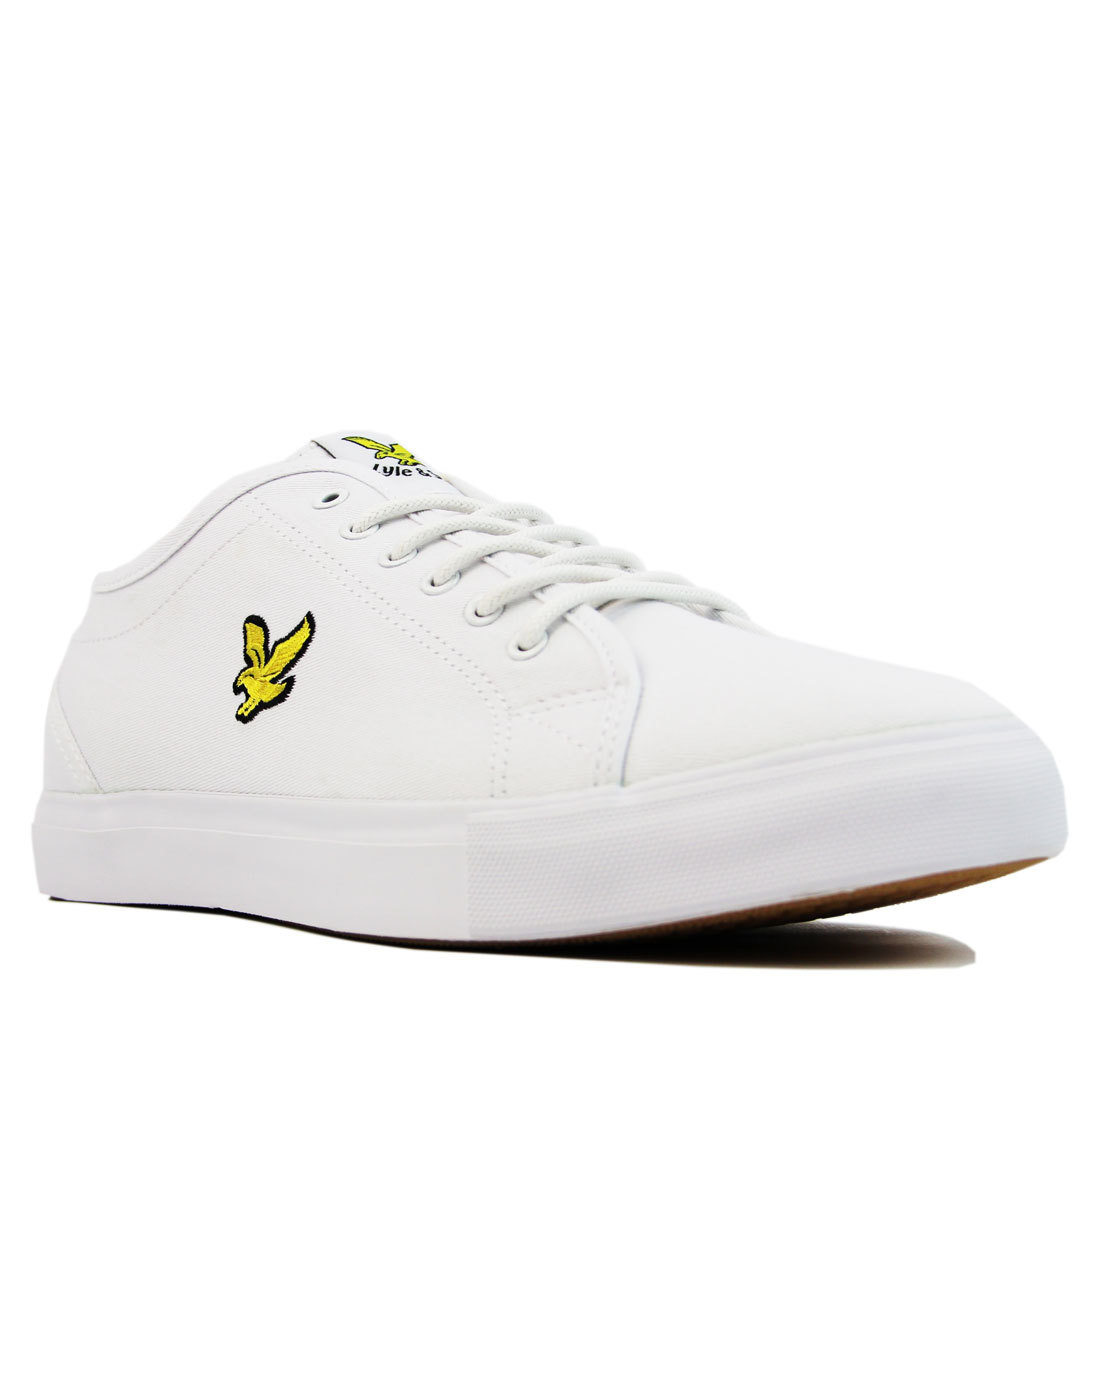 d6111d1a3cb1 LYLE   SCOTT Teviot Twill Retro 70s Canvas Tennis Trainers White